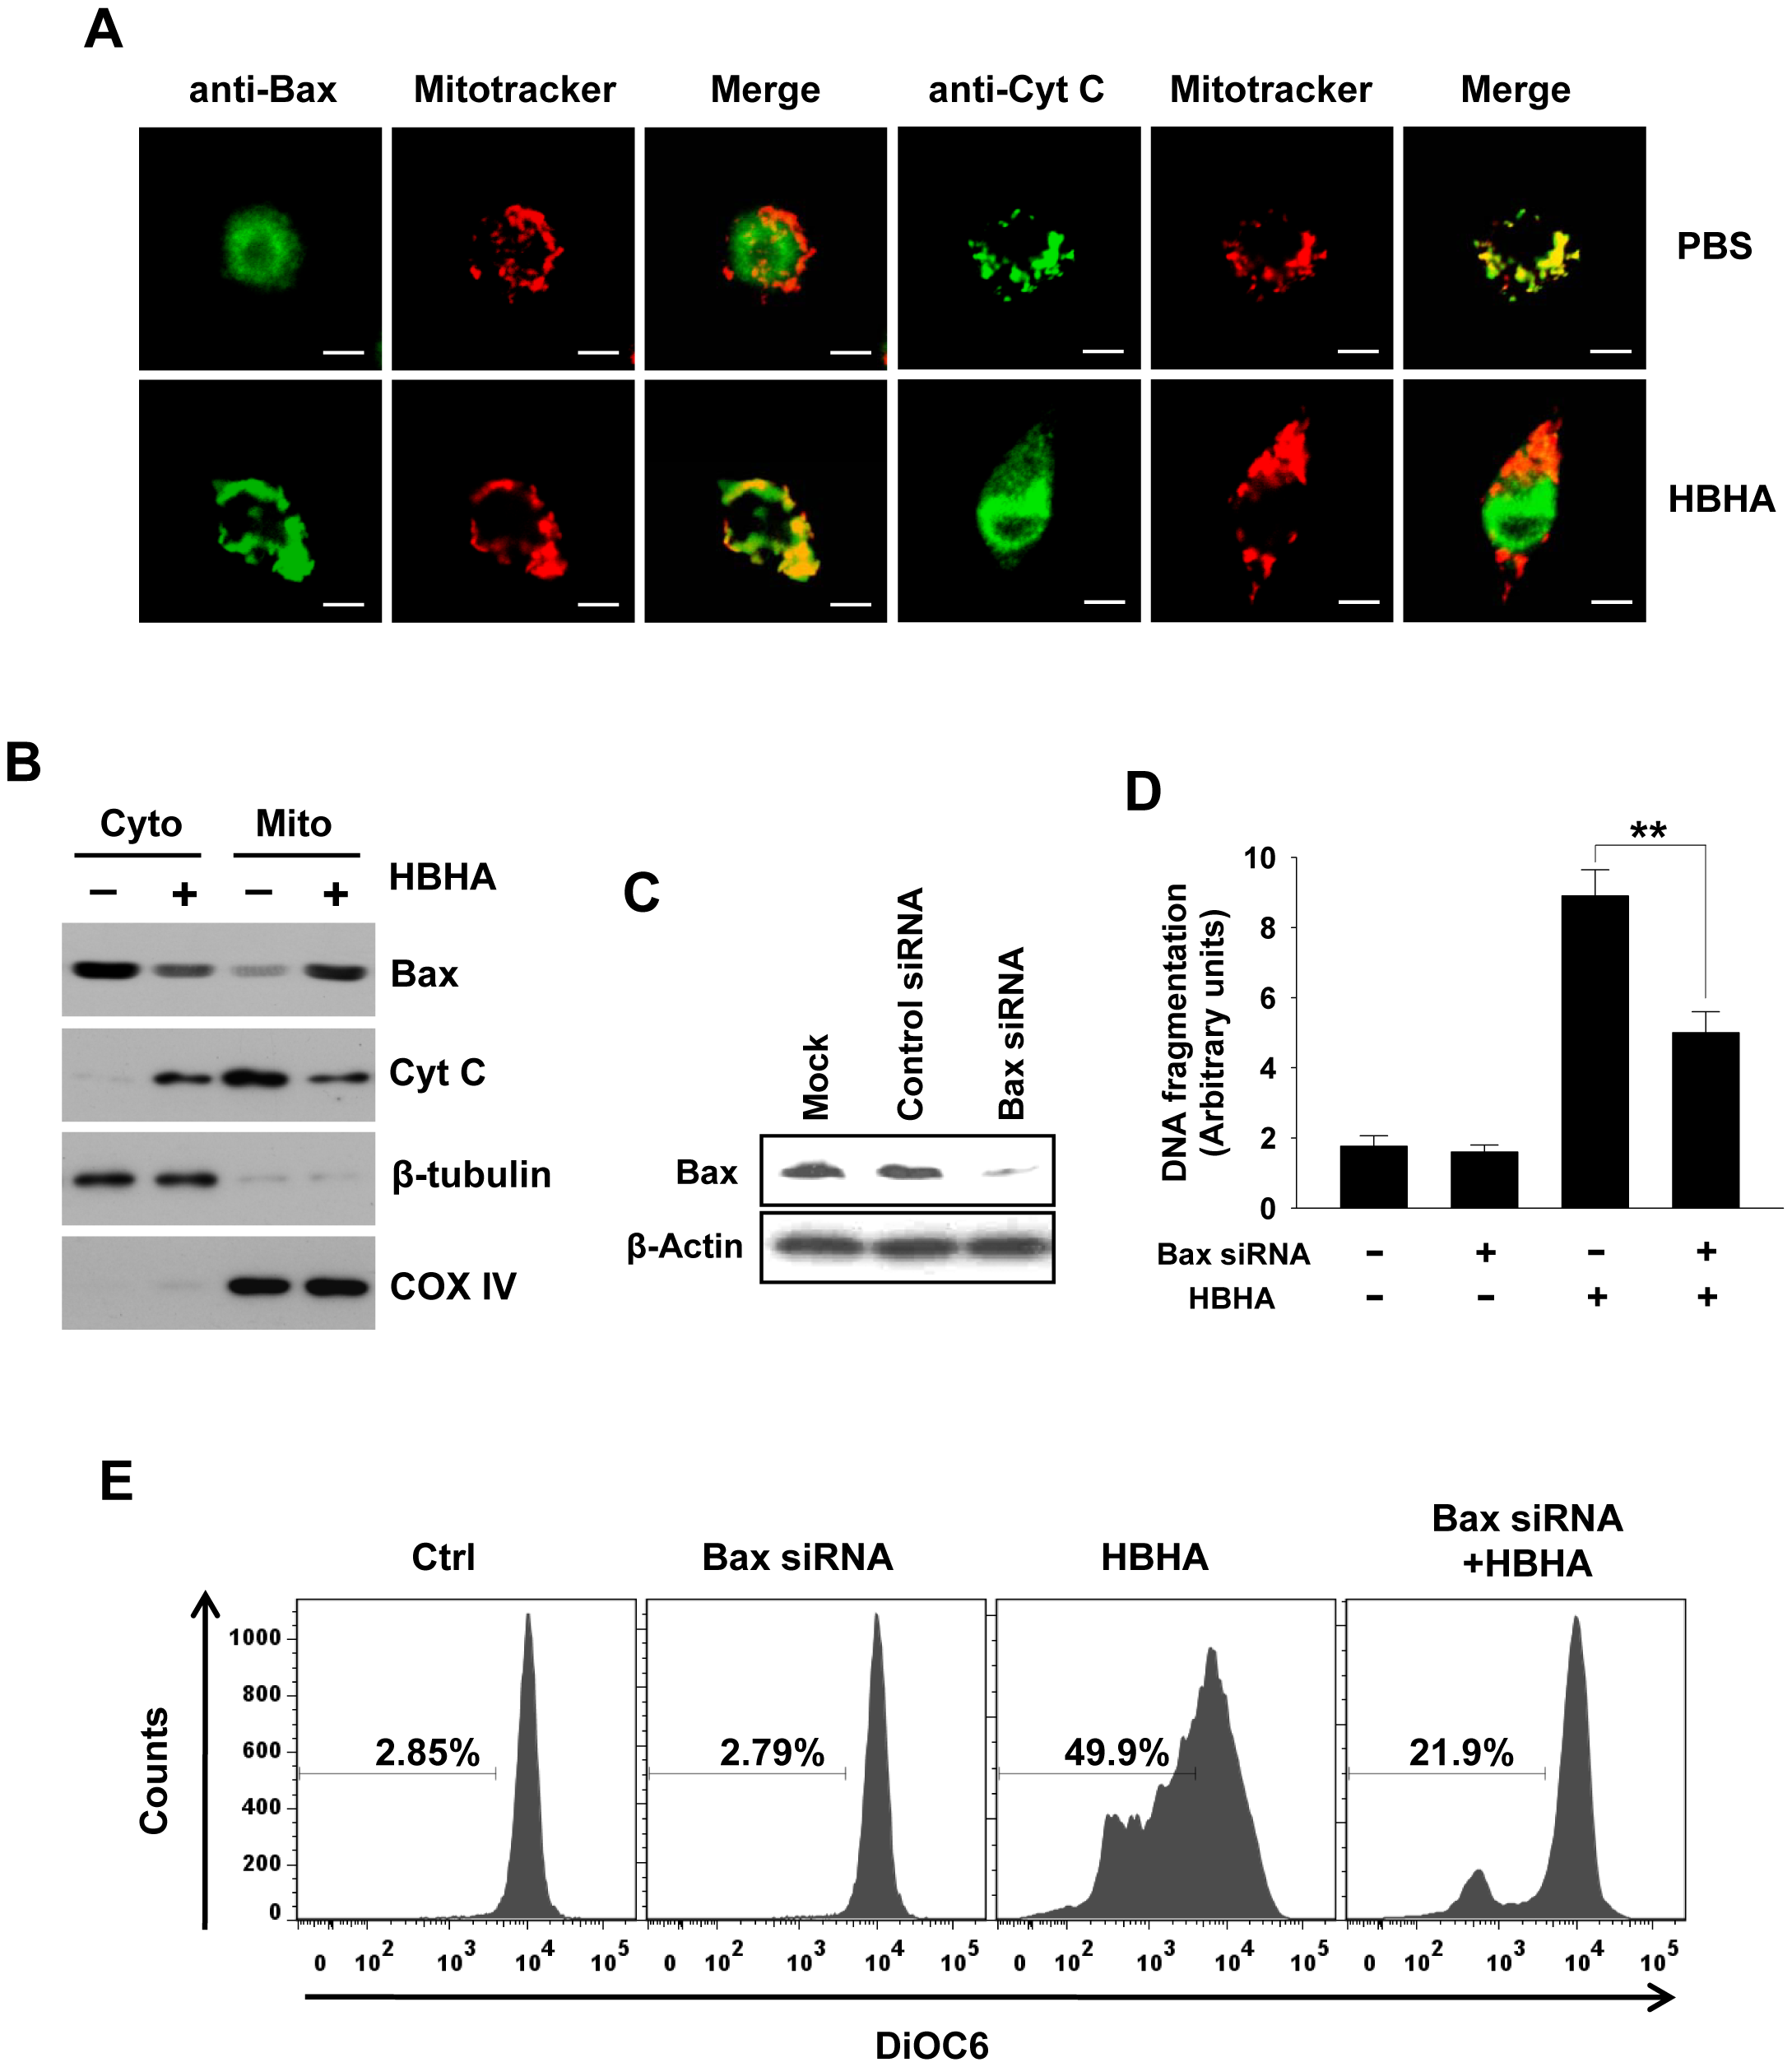 Bax translocation and cytochrome <i>c</i> release by HBHA treatment in macrophages.